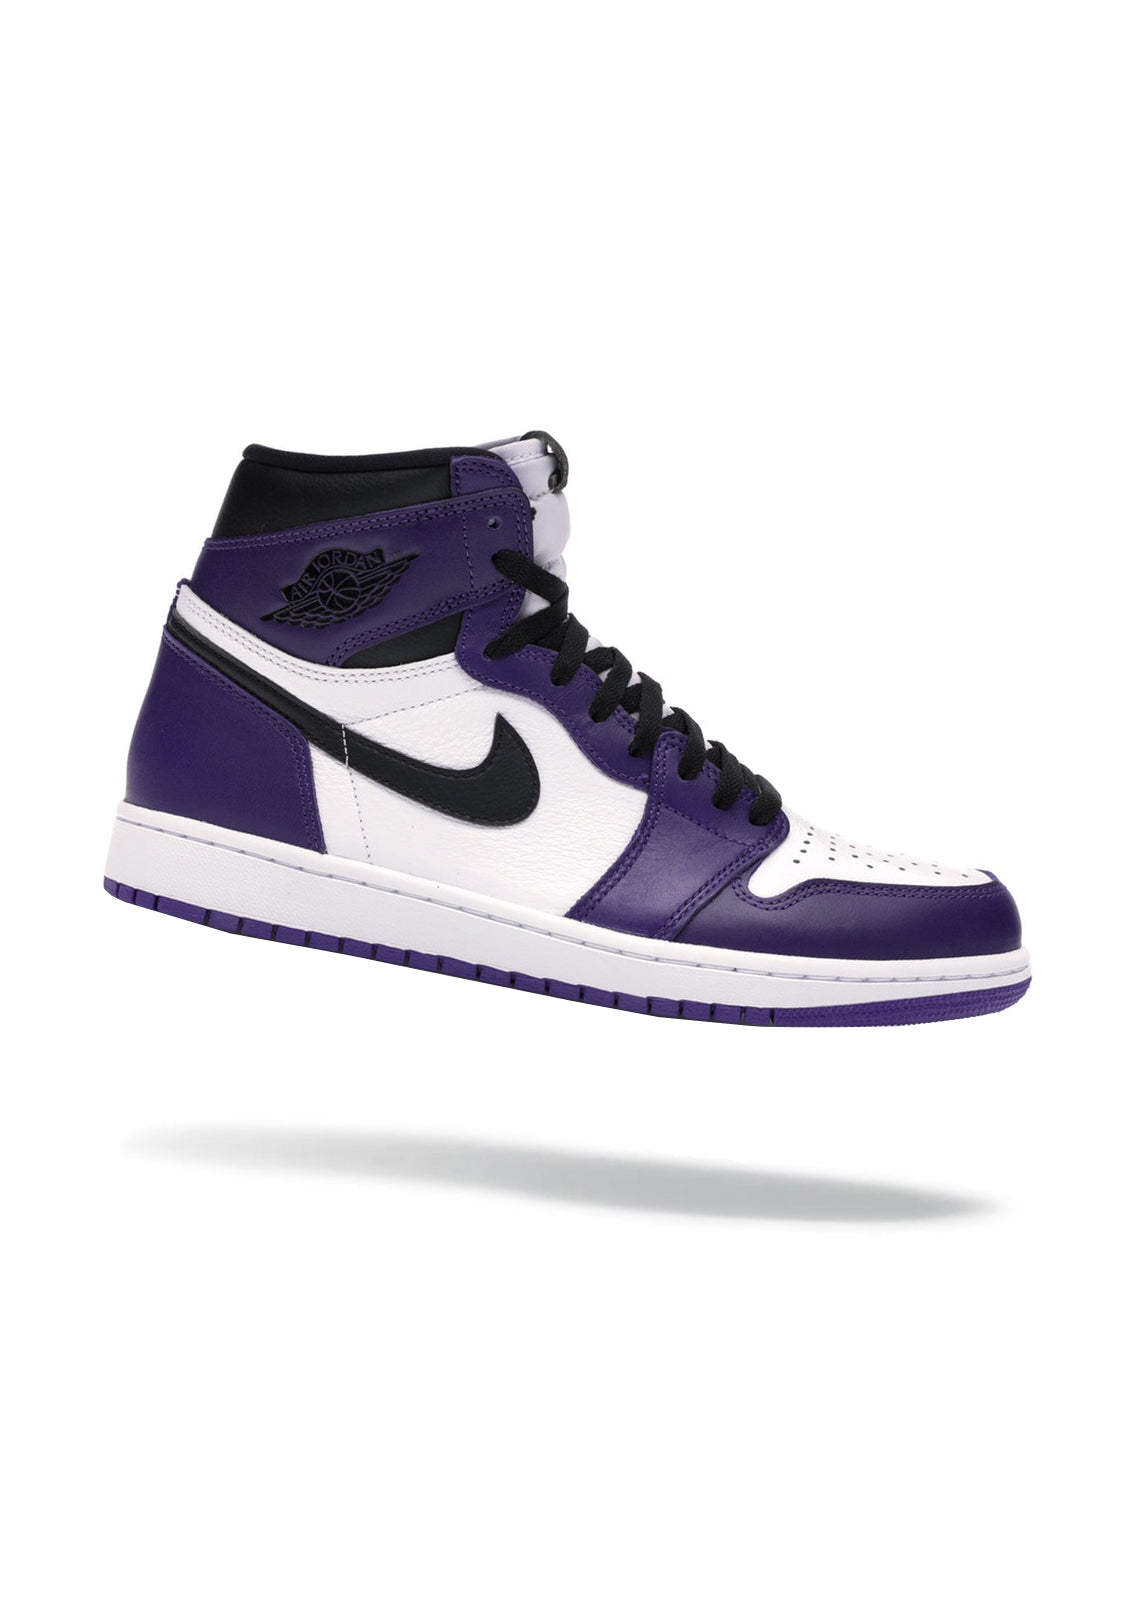 Jordan 1 high Purple court 2.0